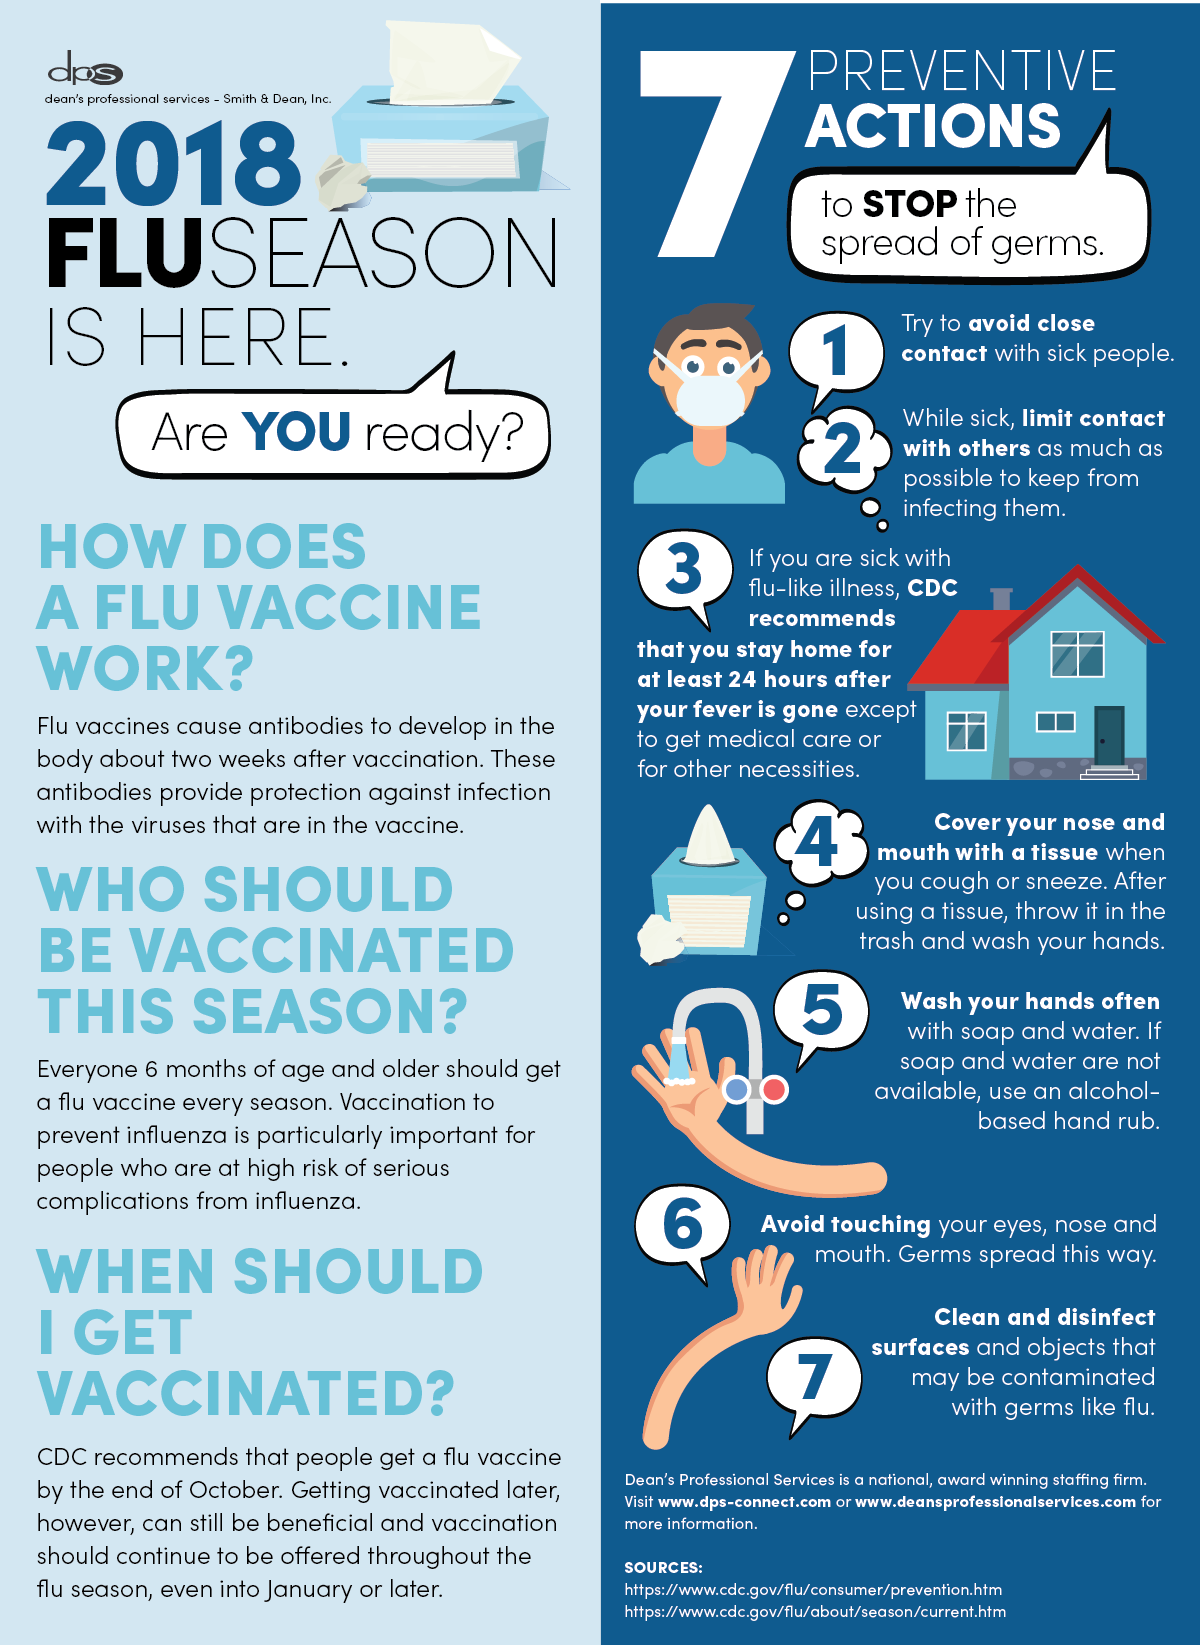 Multi Approach Campaign Flu Season Dps Inspired Graphic Designs